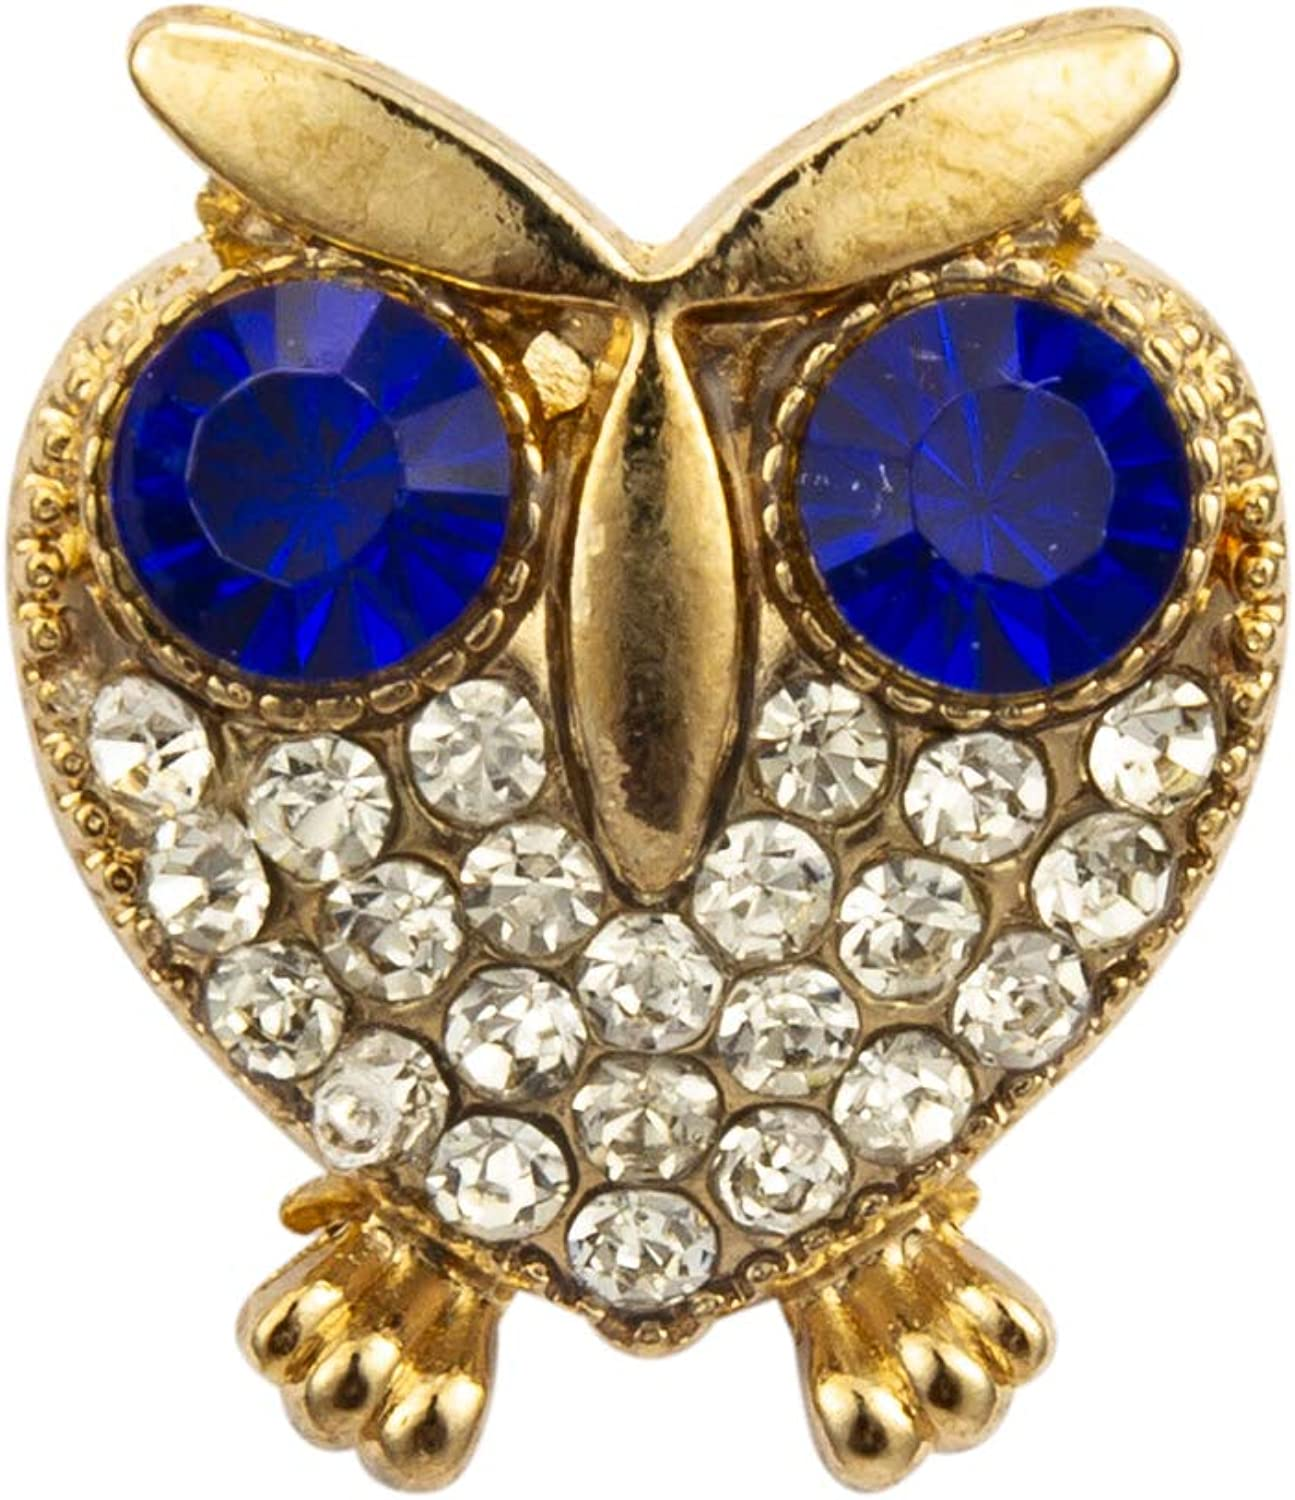 Knighthood Golden Heart Shape Lucky Owl with Big Rhinestone Eyes Lapel Pin Badge Coat Suit Wedding Gift Party Shirt Collar Accessories Brooch for Men